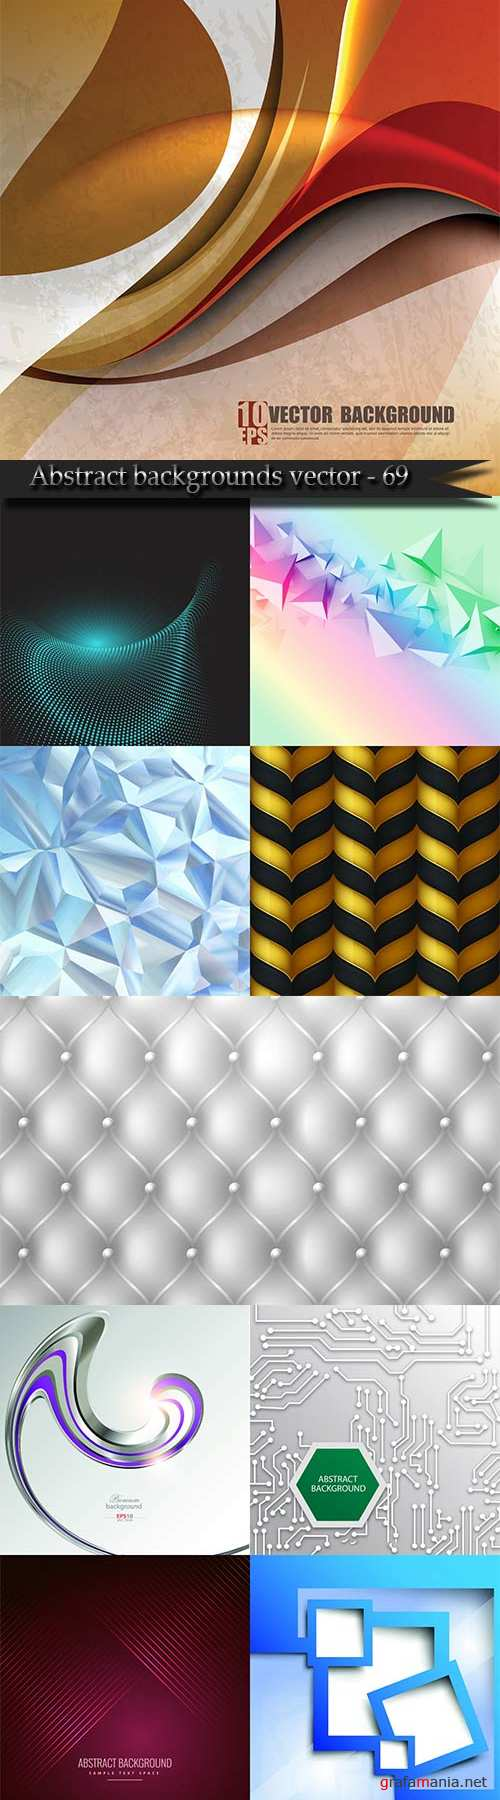 Bright colorful abstract backgrounds vector - 69